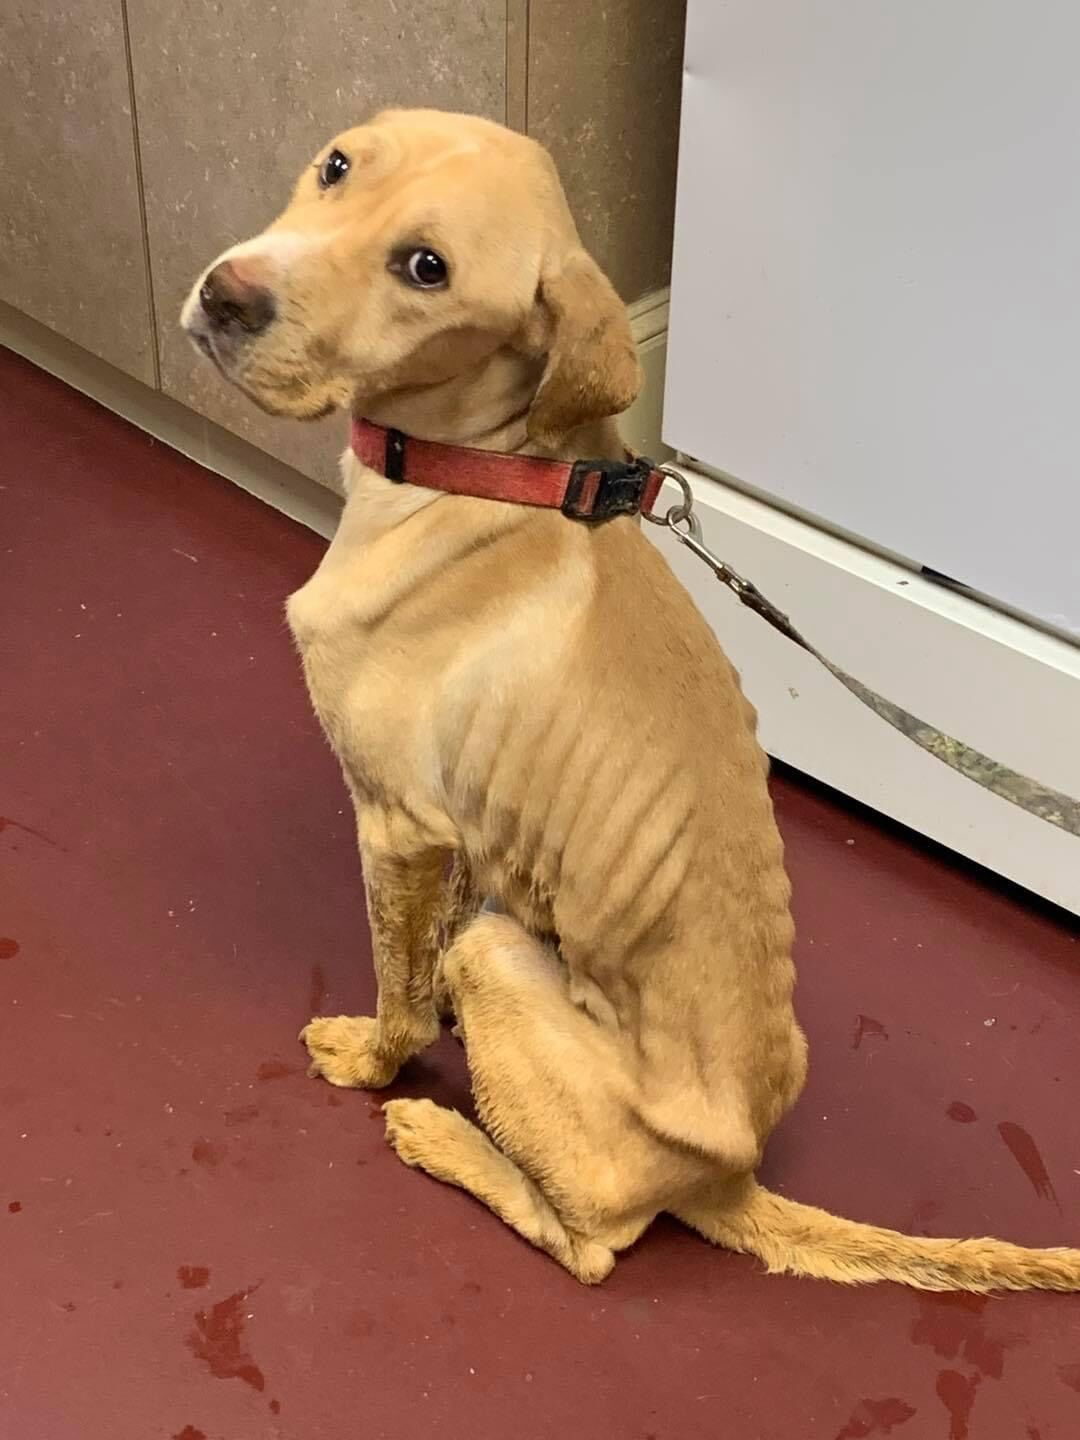 Investigation underway after severely malnourished dog dropped off at local shelter